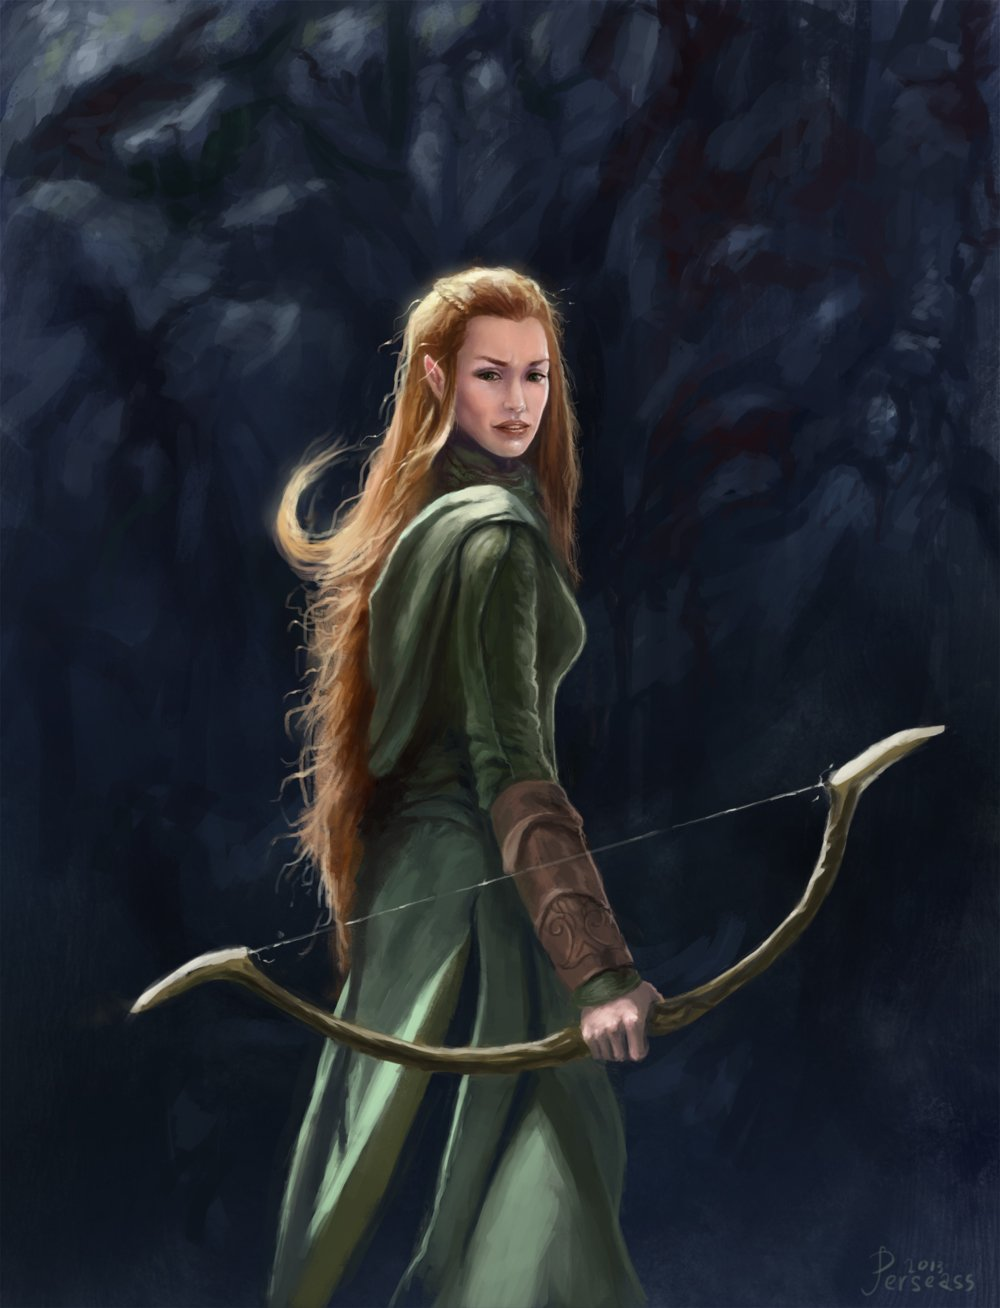 tauriel by Perseass 1000x1308